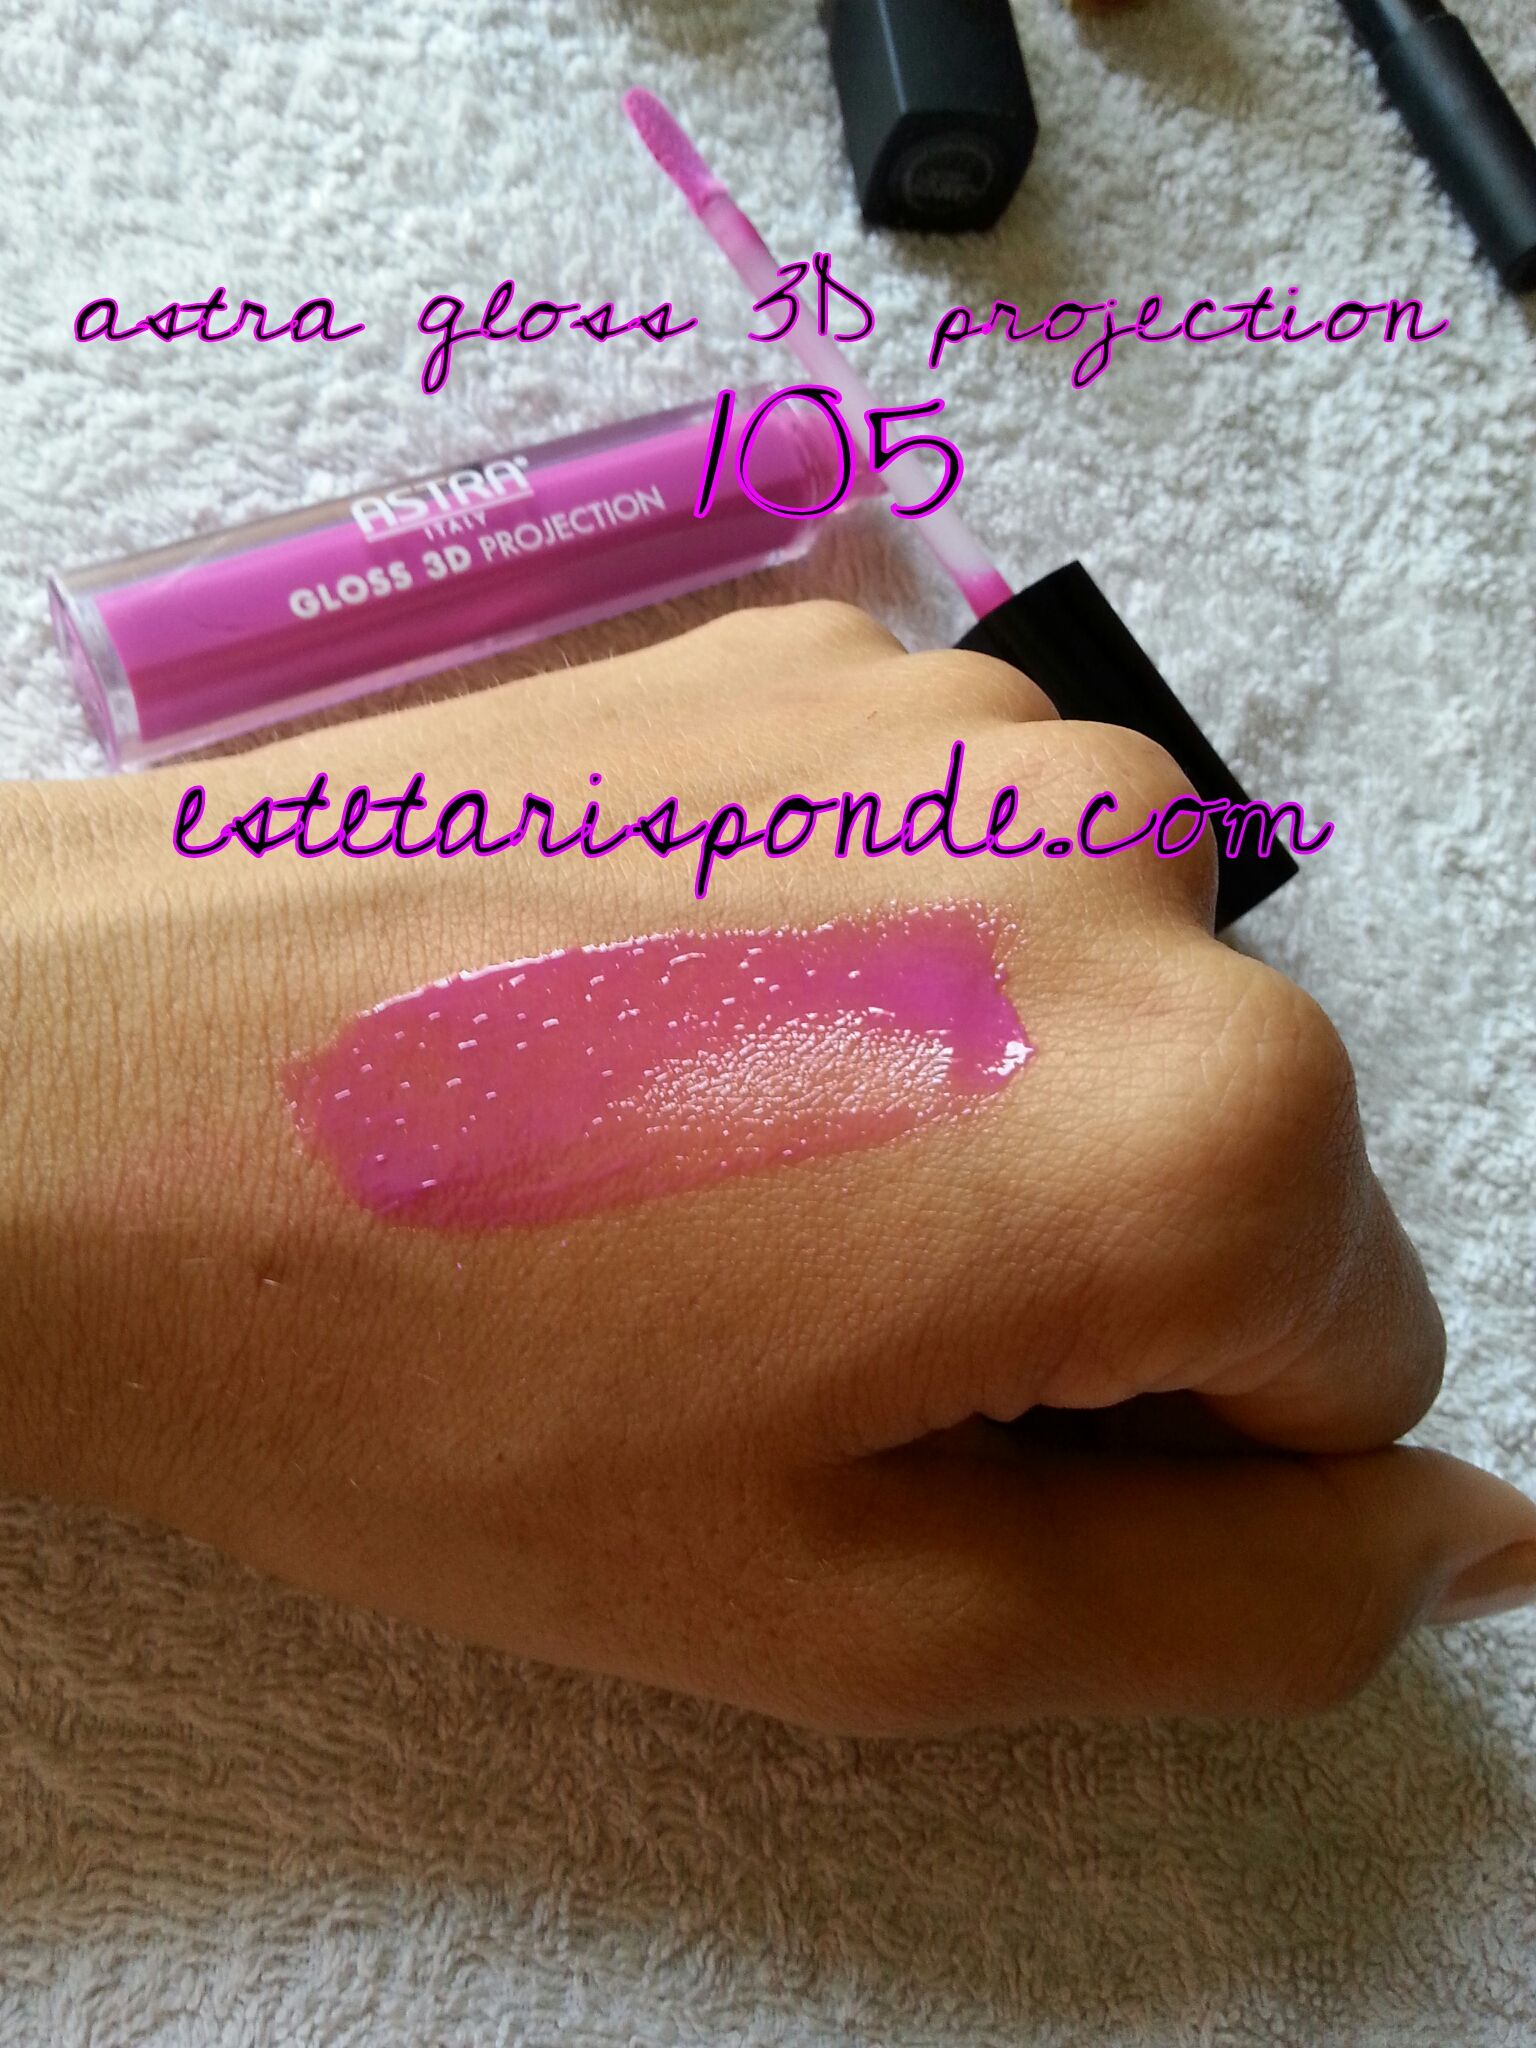 Astra gloss 3D projection #105 - swatch